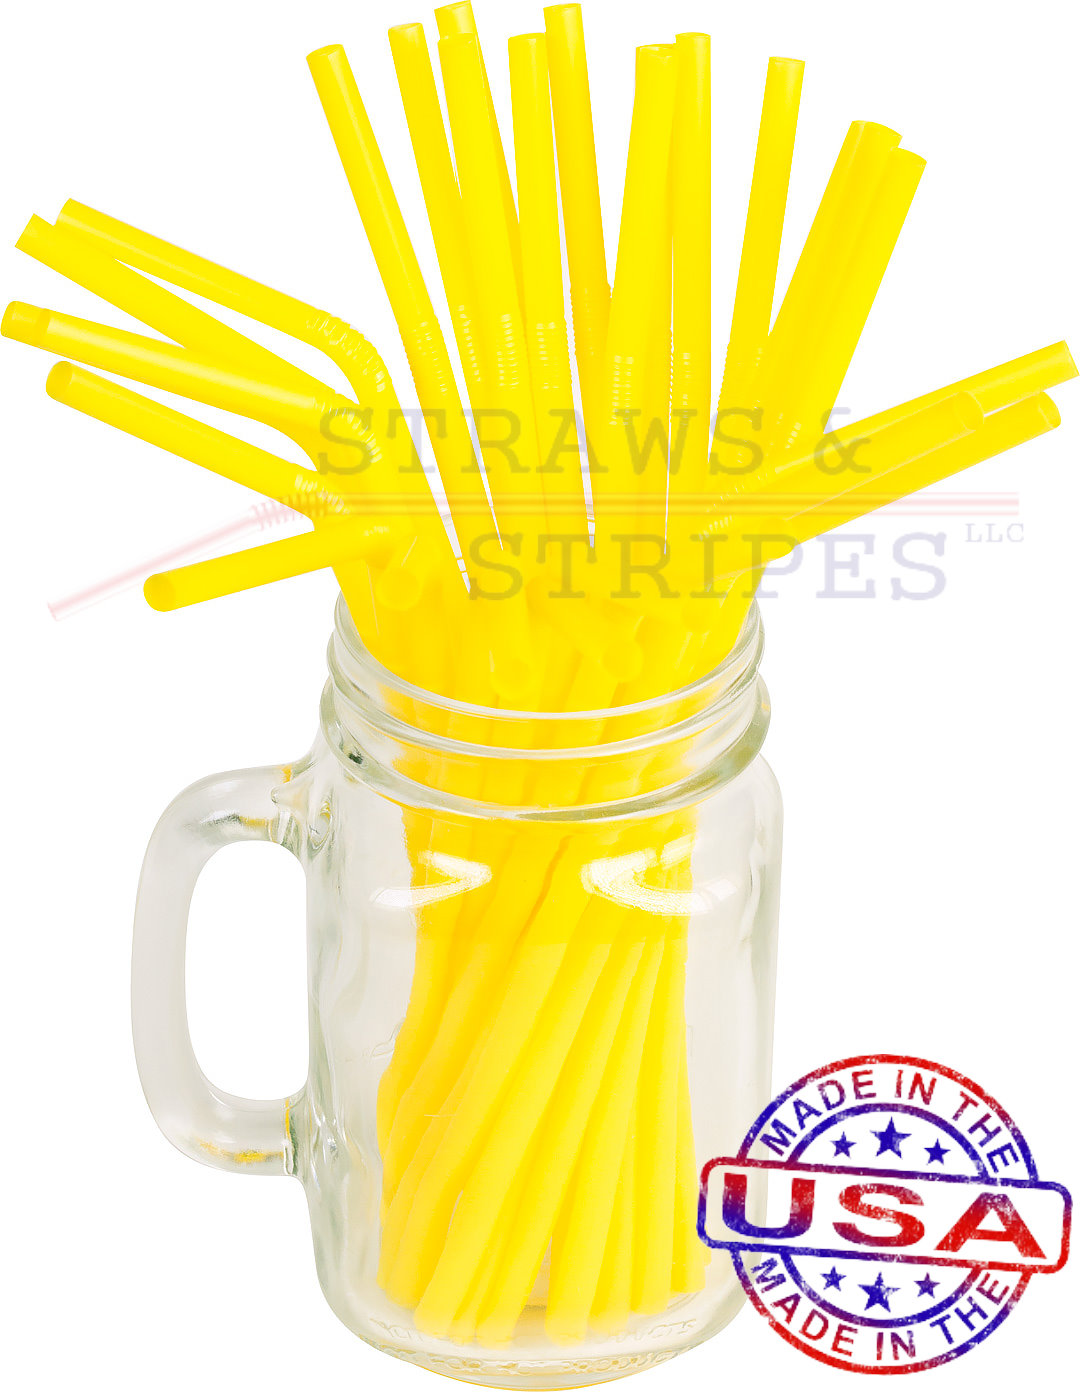 Straw clipart flexible X inch in in USA